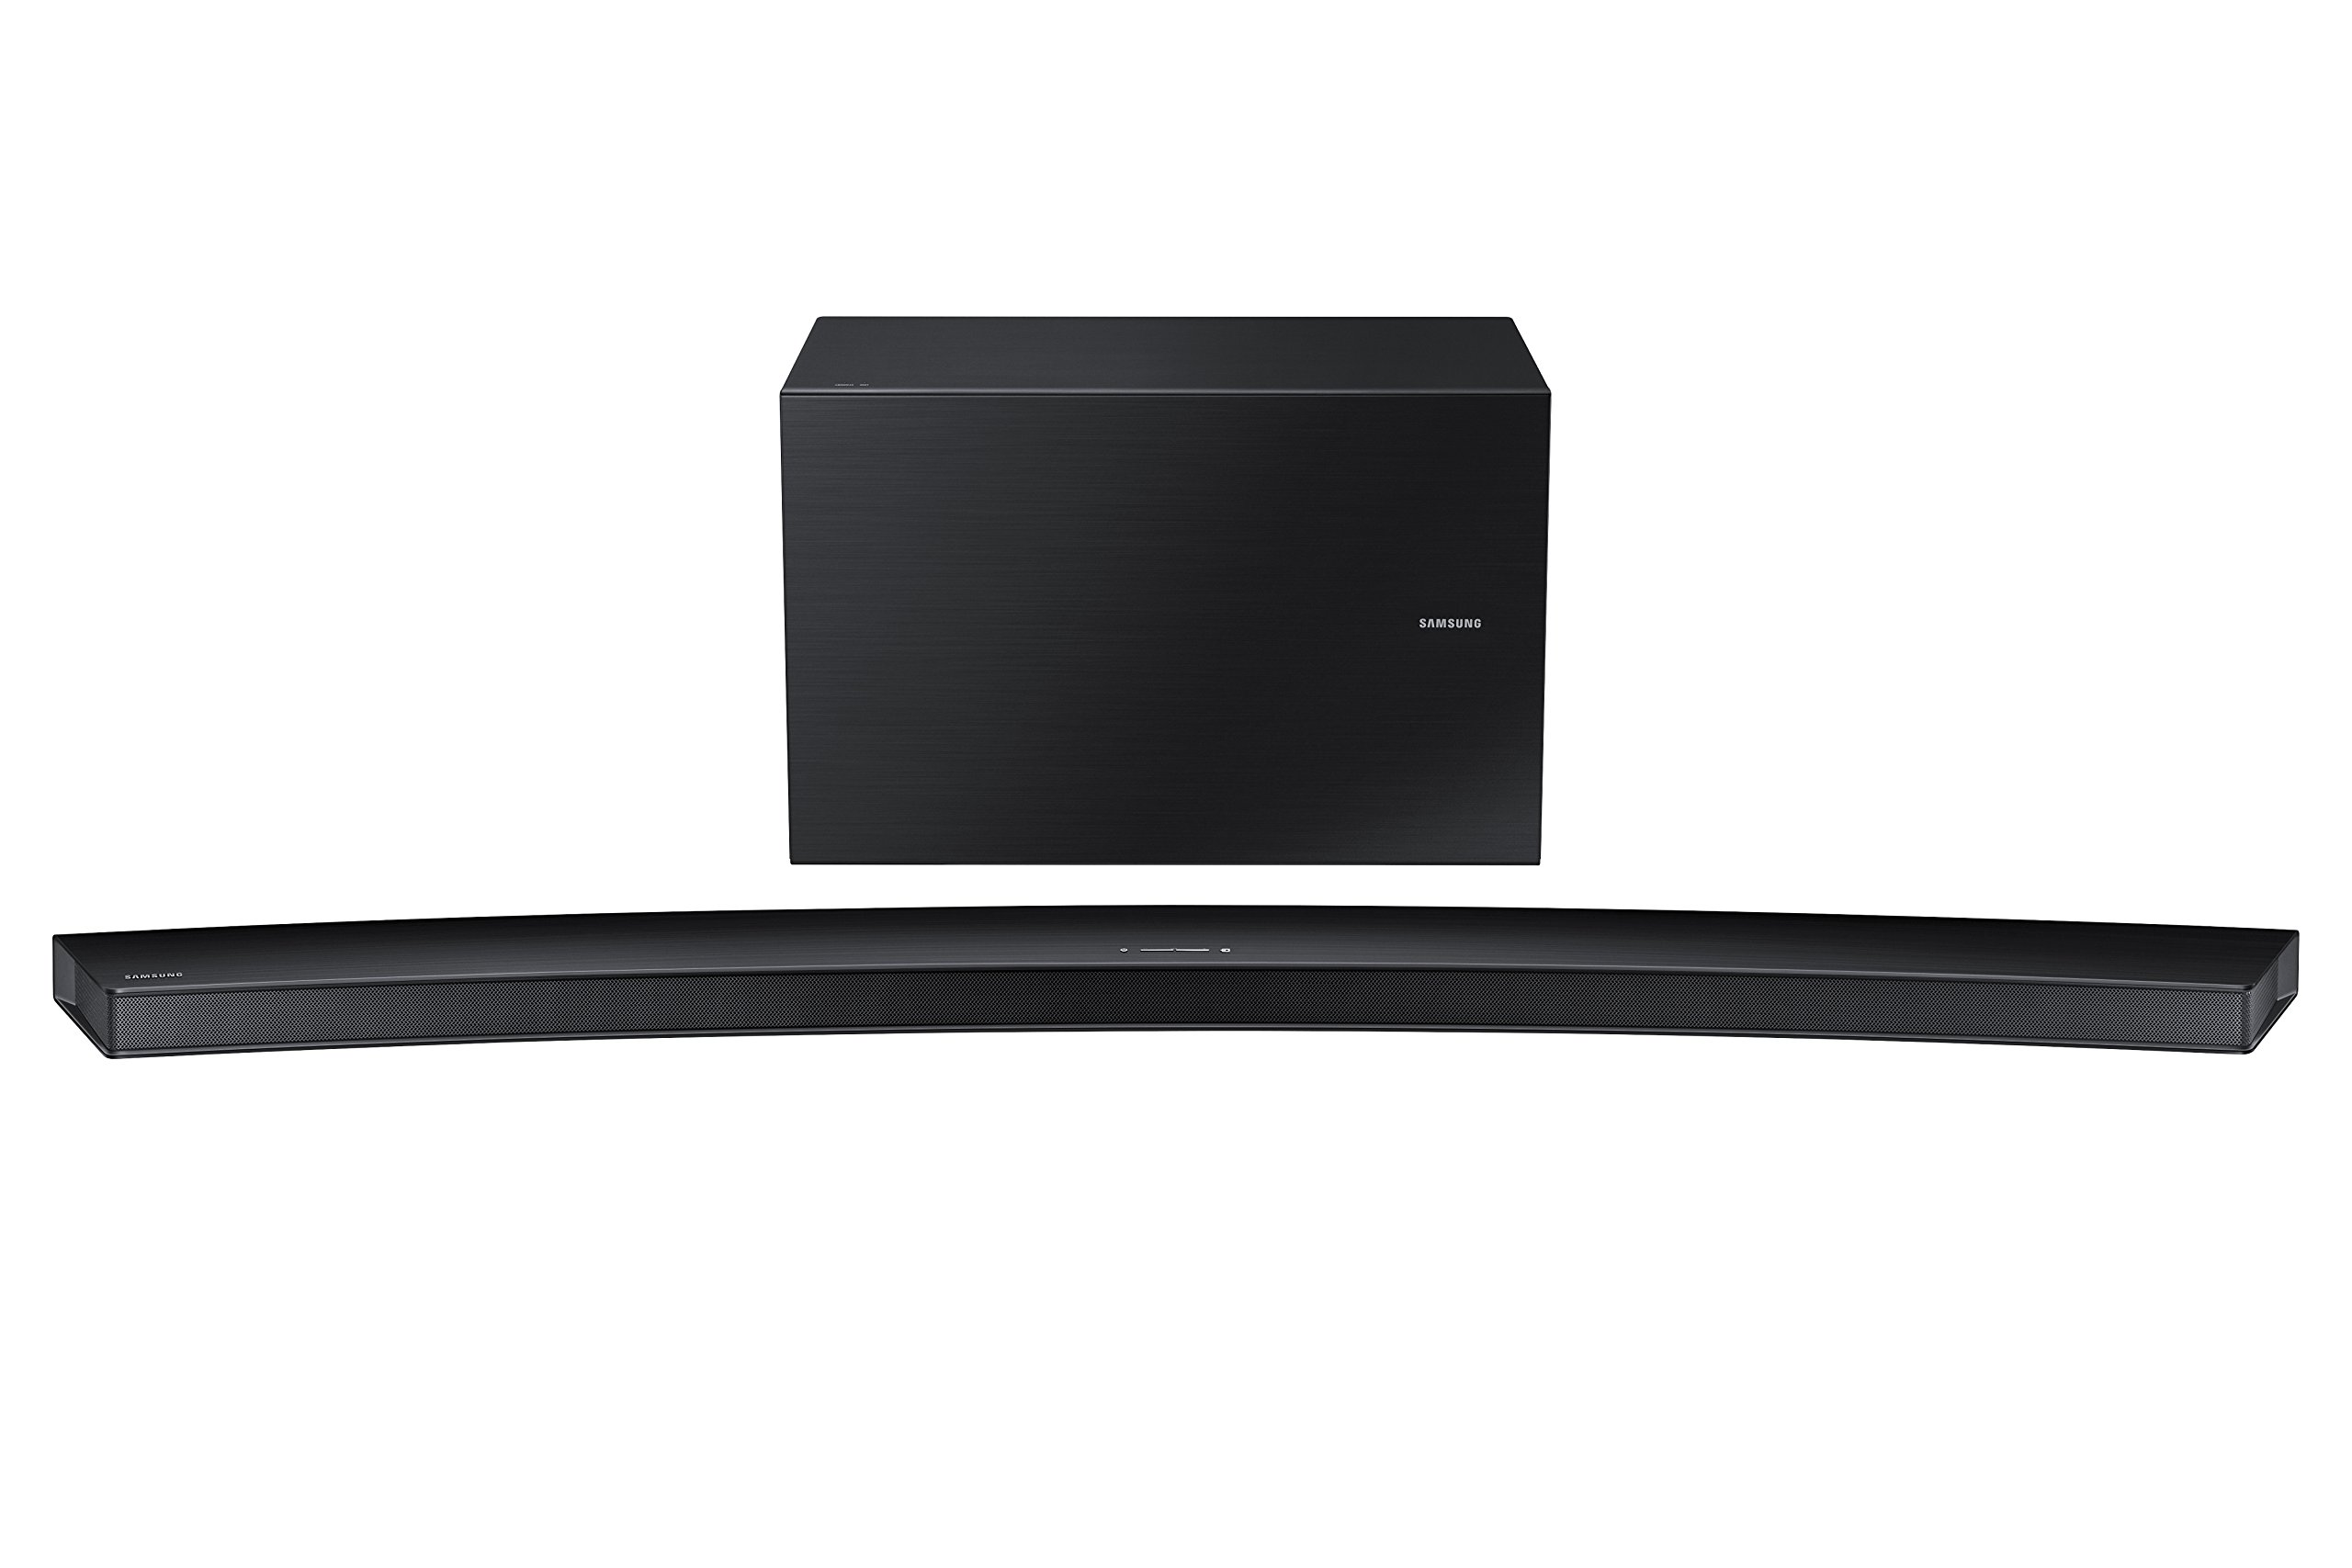 Samsung HW-J8500R 5.1 Channel 350 Watt Curved Wireless Audio Soundbar (2016 Model) by Samsung